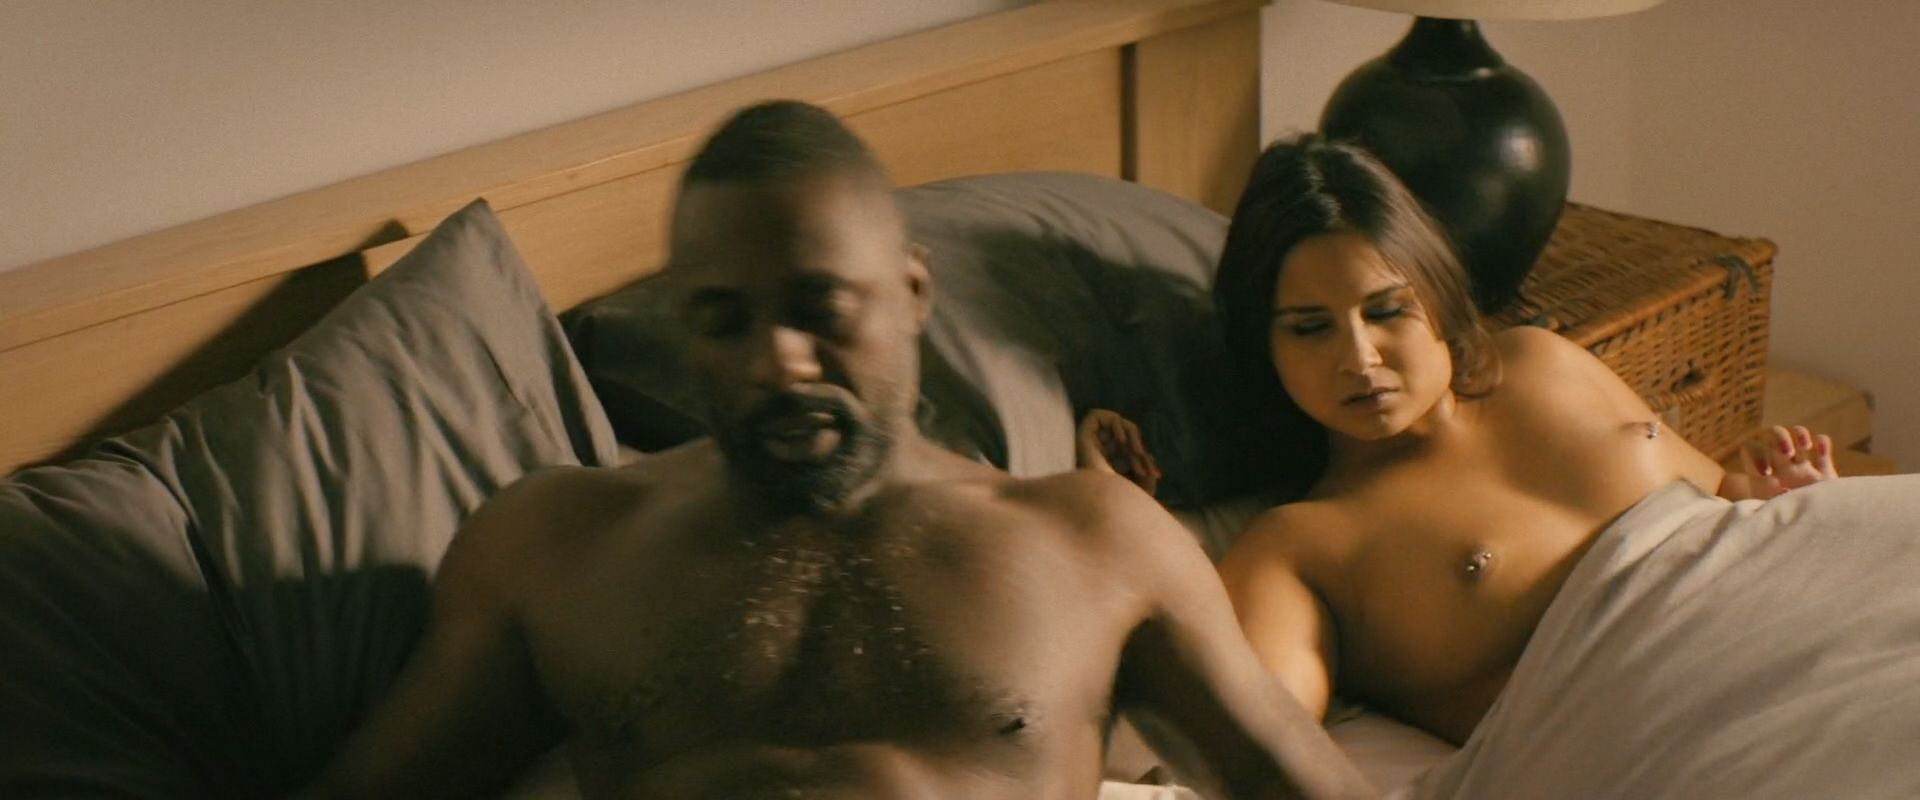 Gemma Arterton Sex Scene gemma arterton naked scene - sex archive. comments: 1